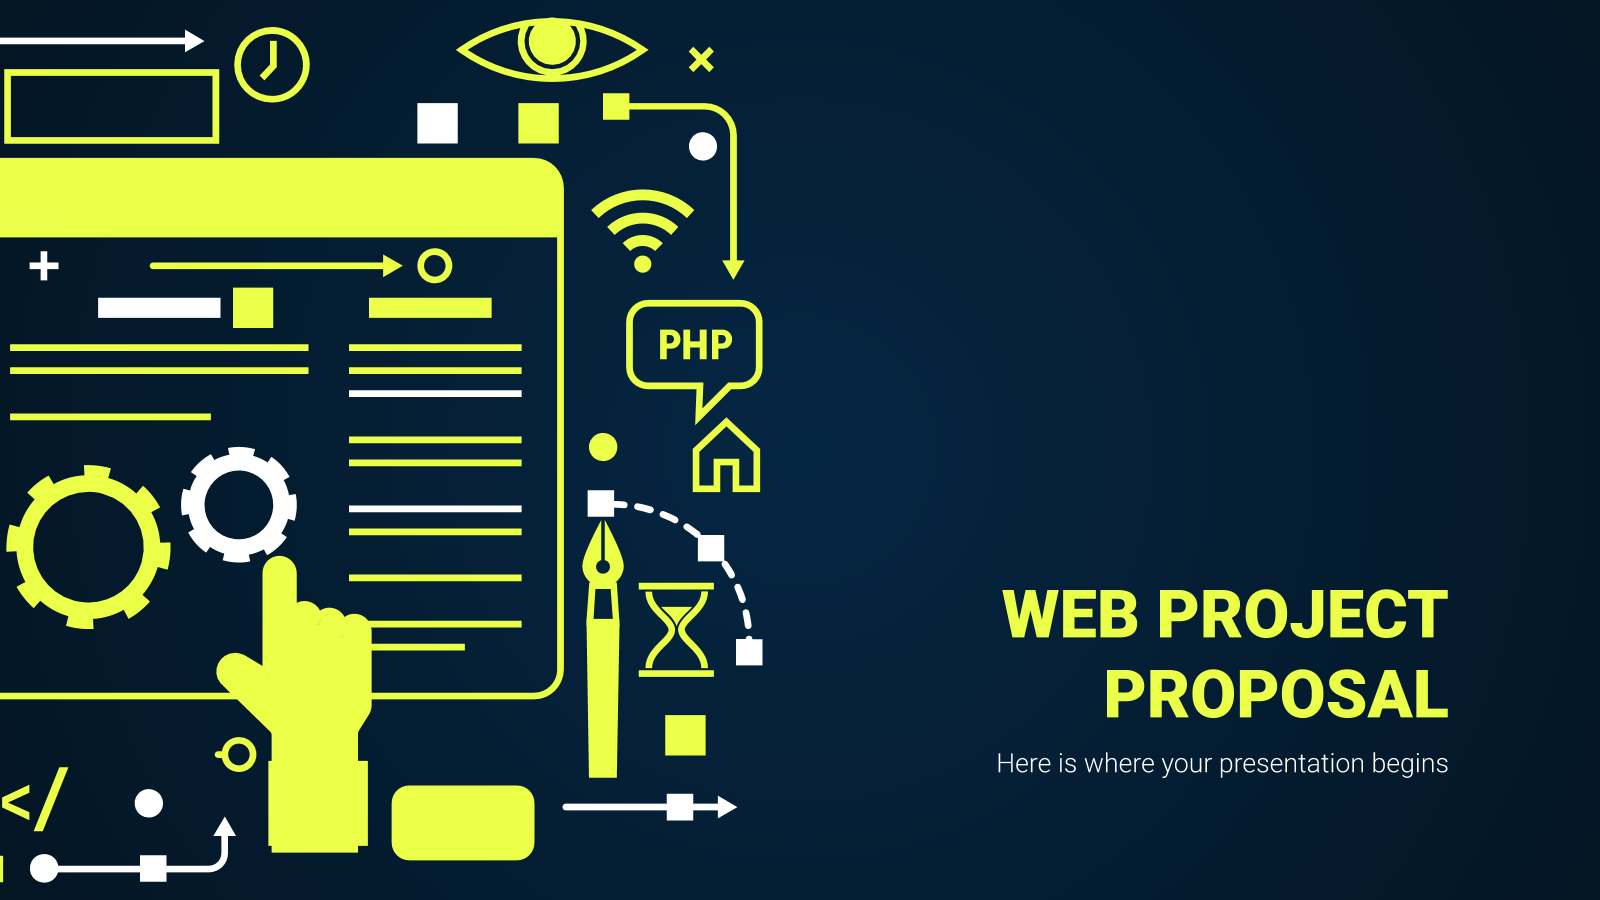 Web Project Proposal presentation template